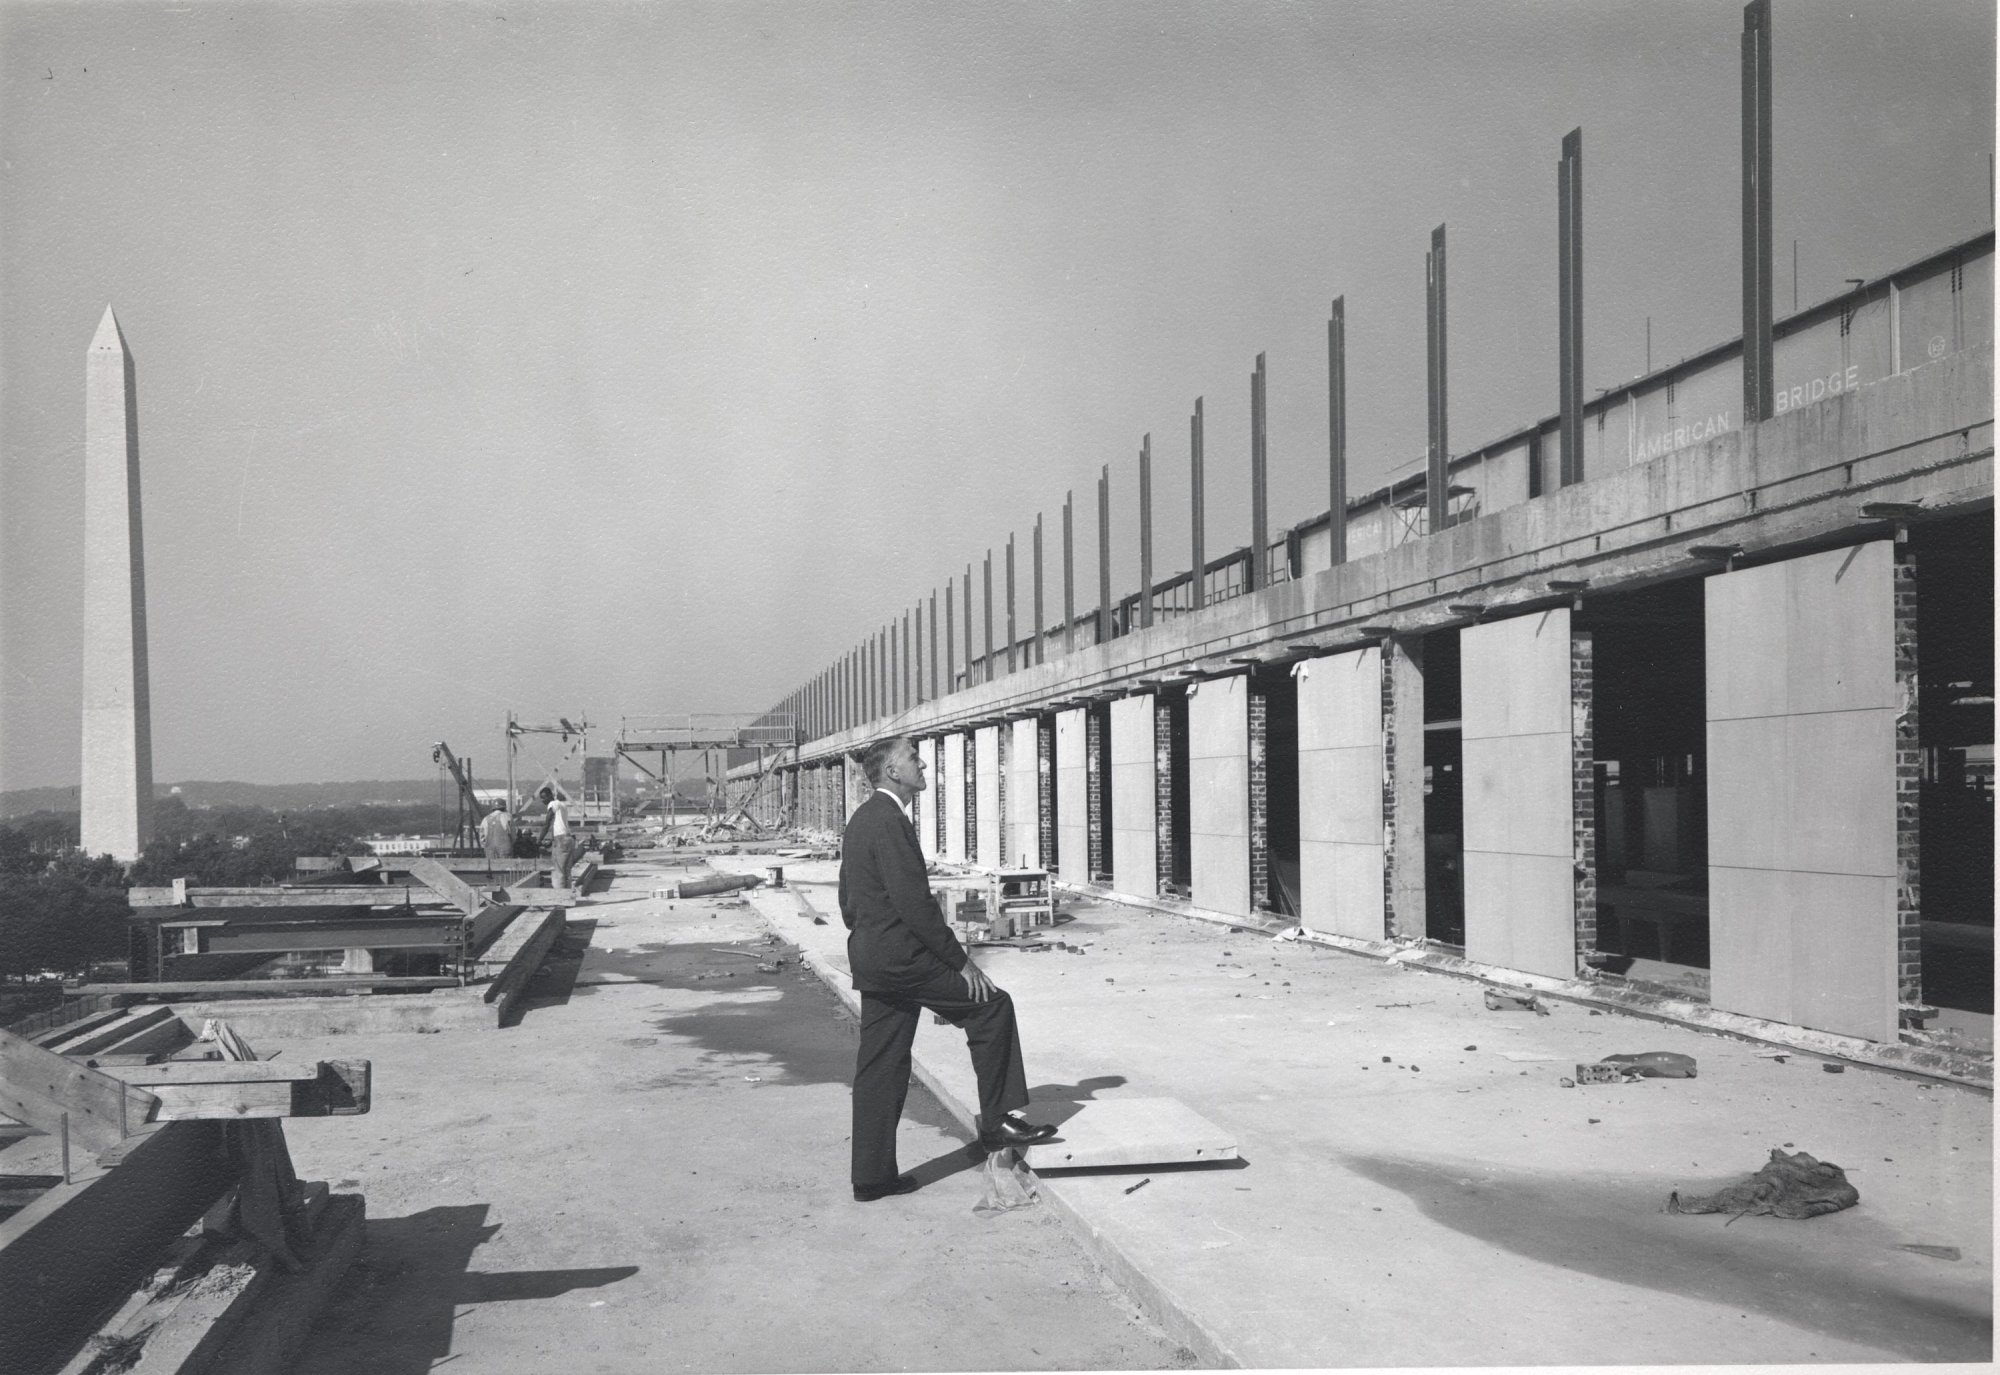 The museum, then named the Museum of History and Technology, under construction in 1962. Photo courtesy of the Smithsonian Institution Archives.